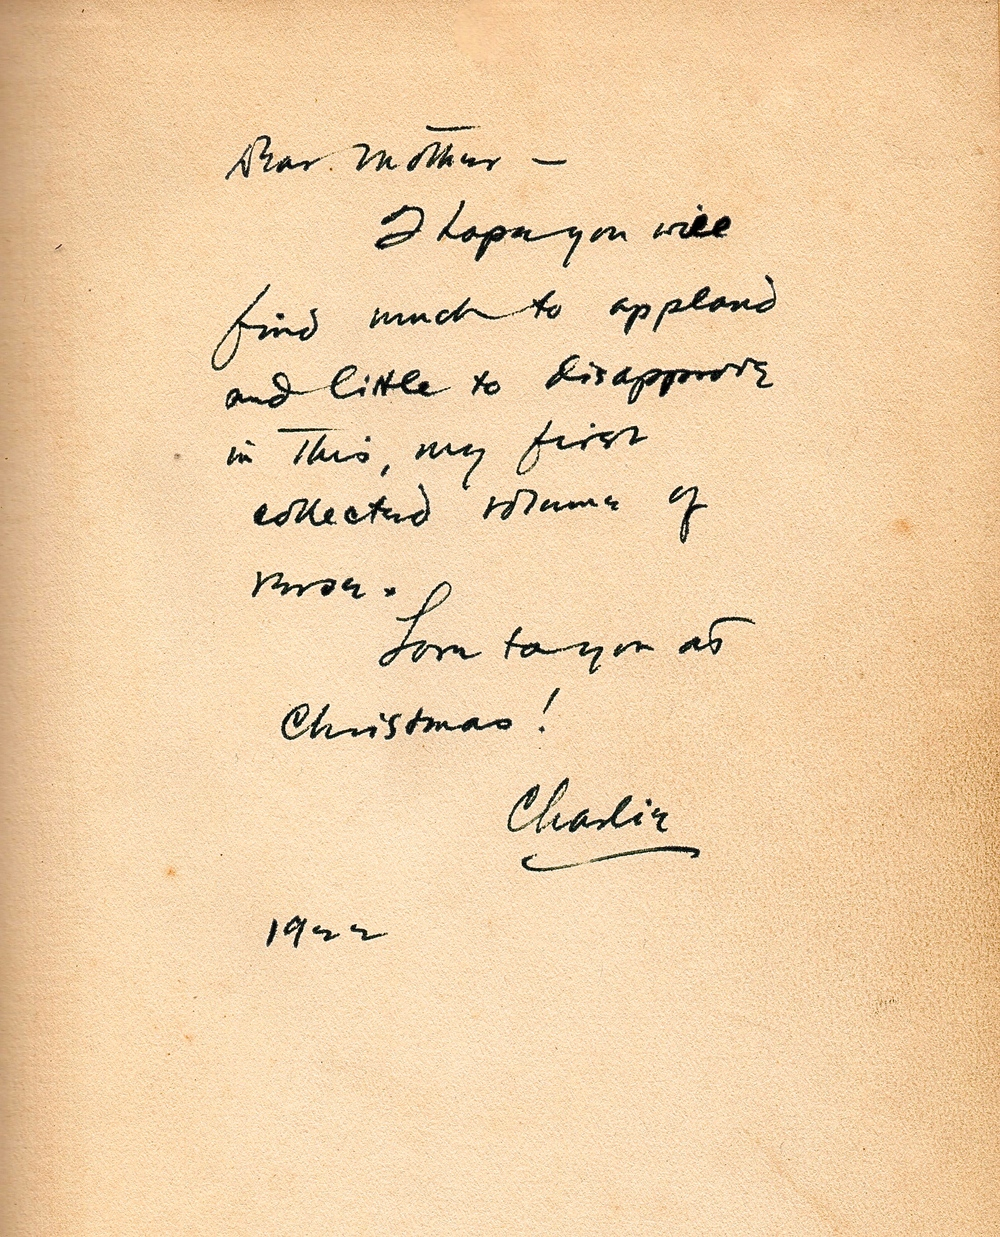 The rare inscription from Vincent Starrett to his mother. Note that in his family, he was known as Charles or Charlie, while most of his professional acquaintances called him Vincent.